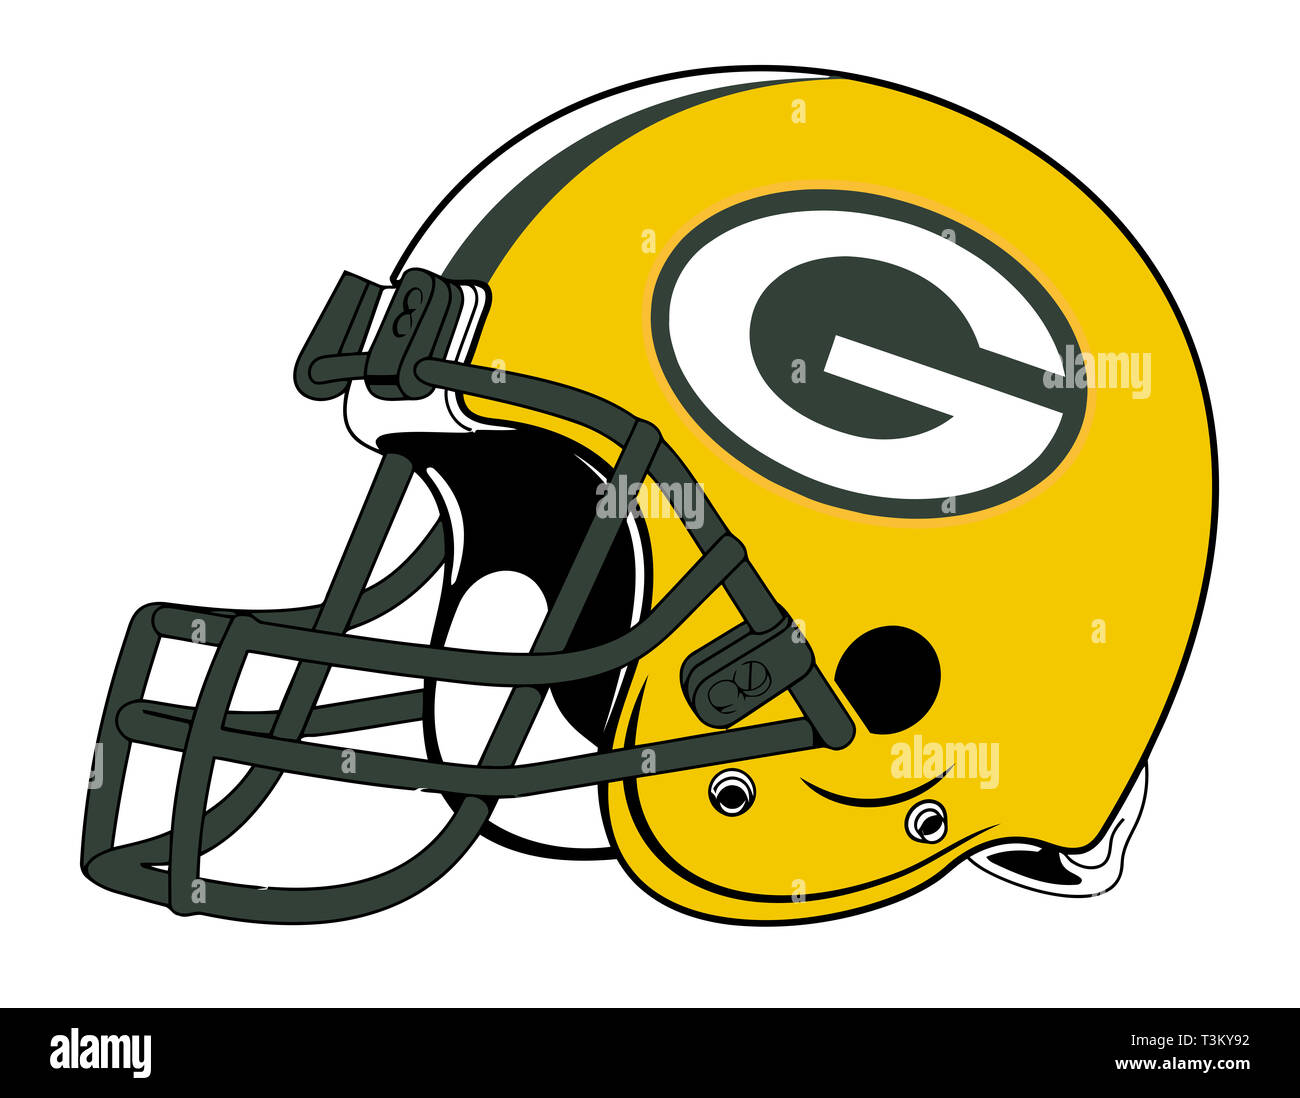 Green Bay Packers Helmet Team Sport Equipment Illustration Stock Photo Alamy